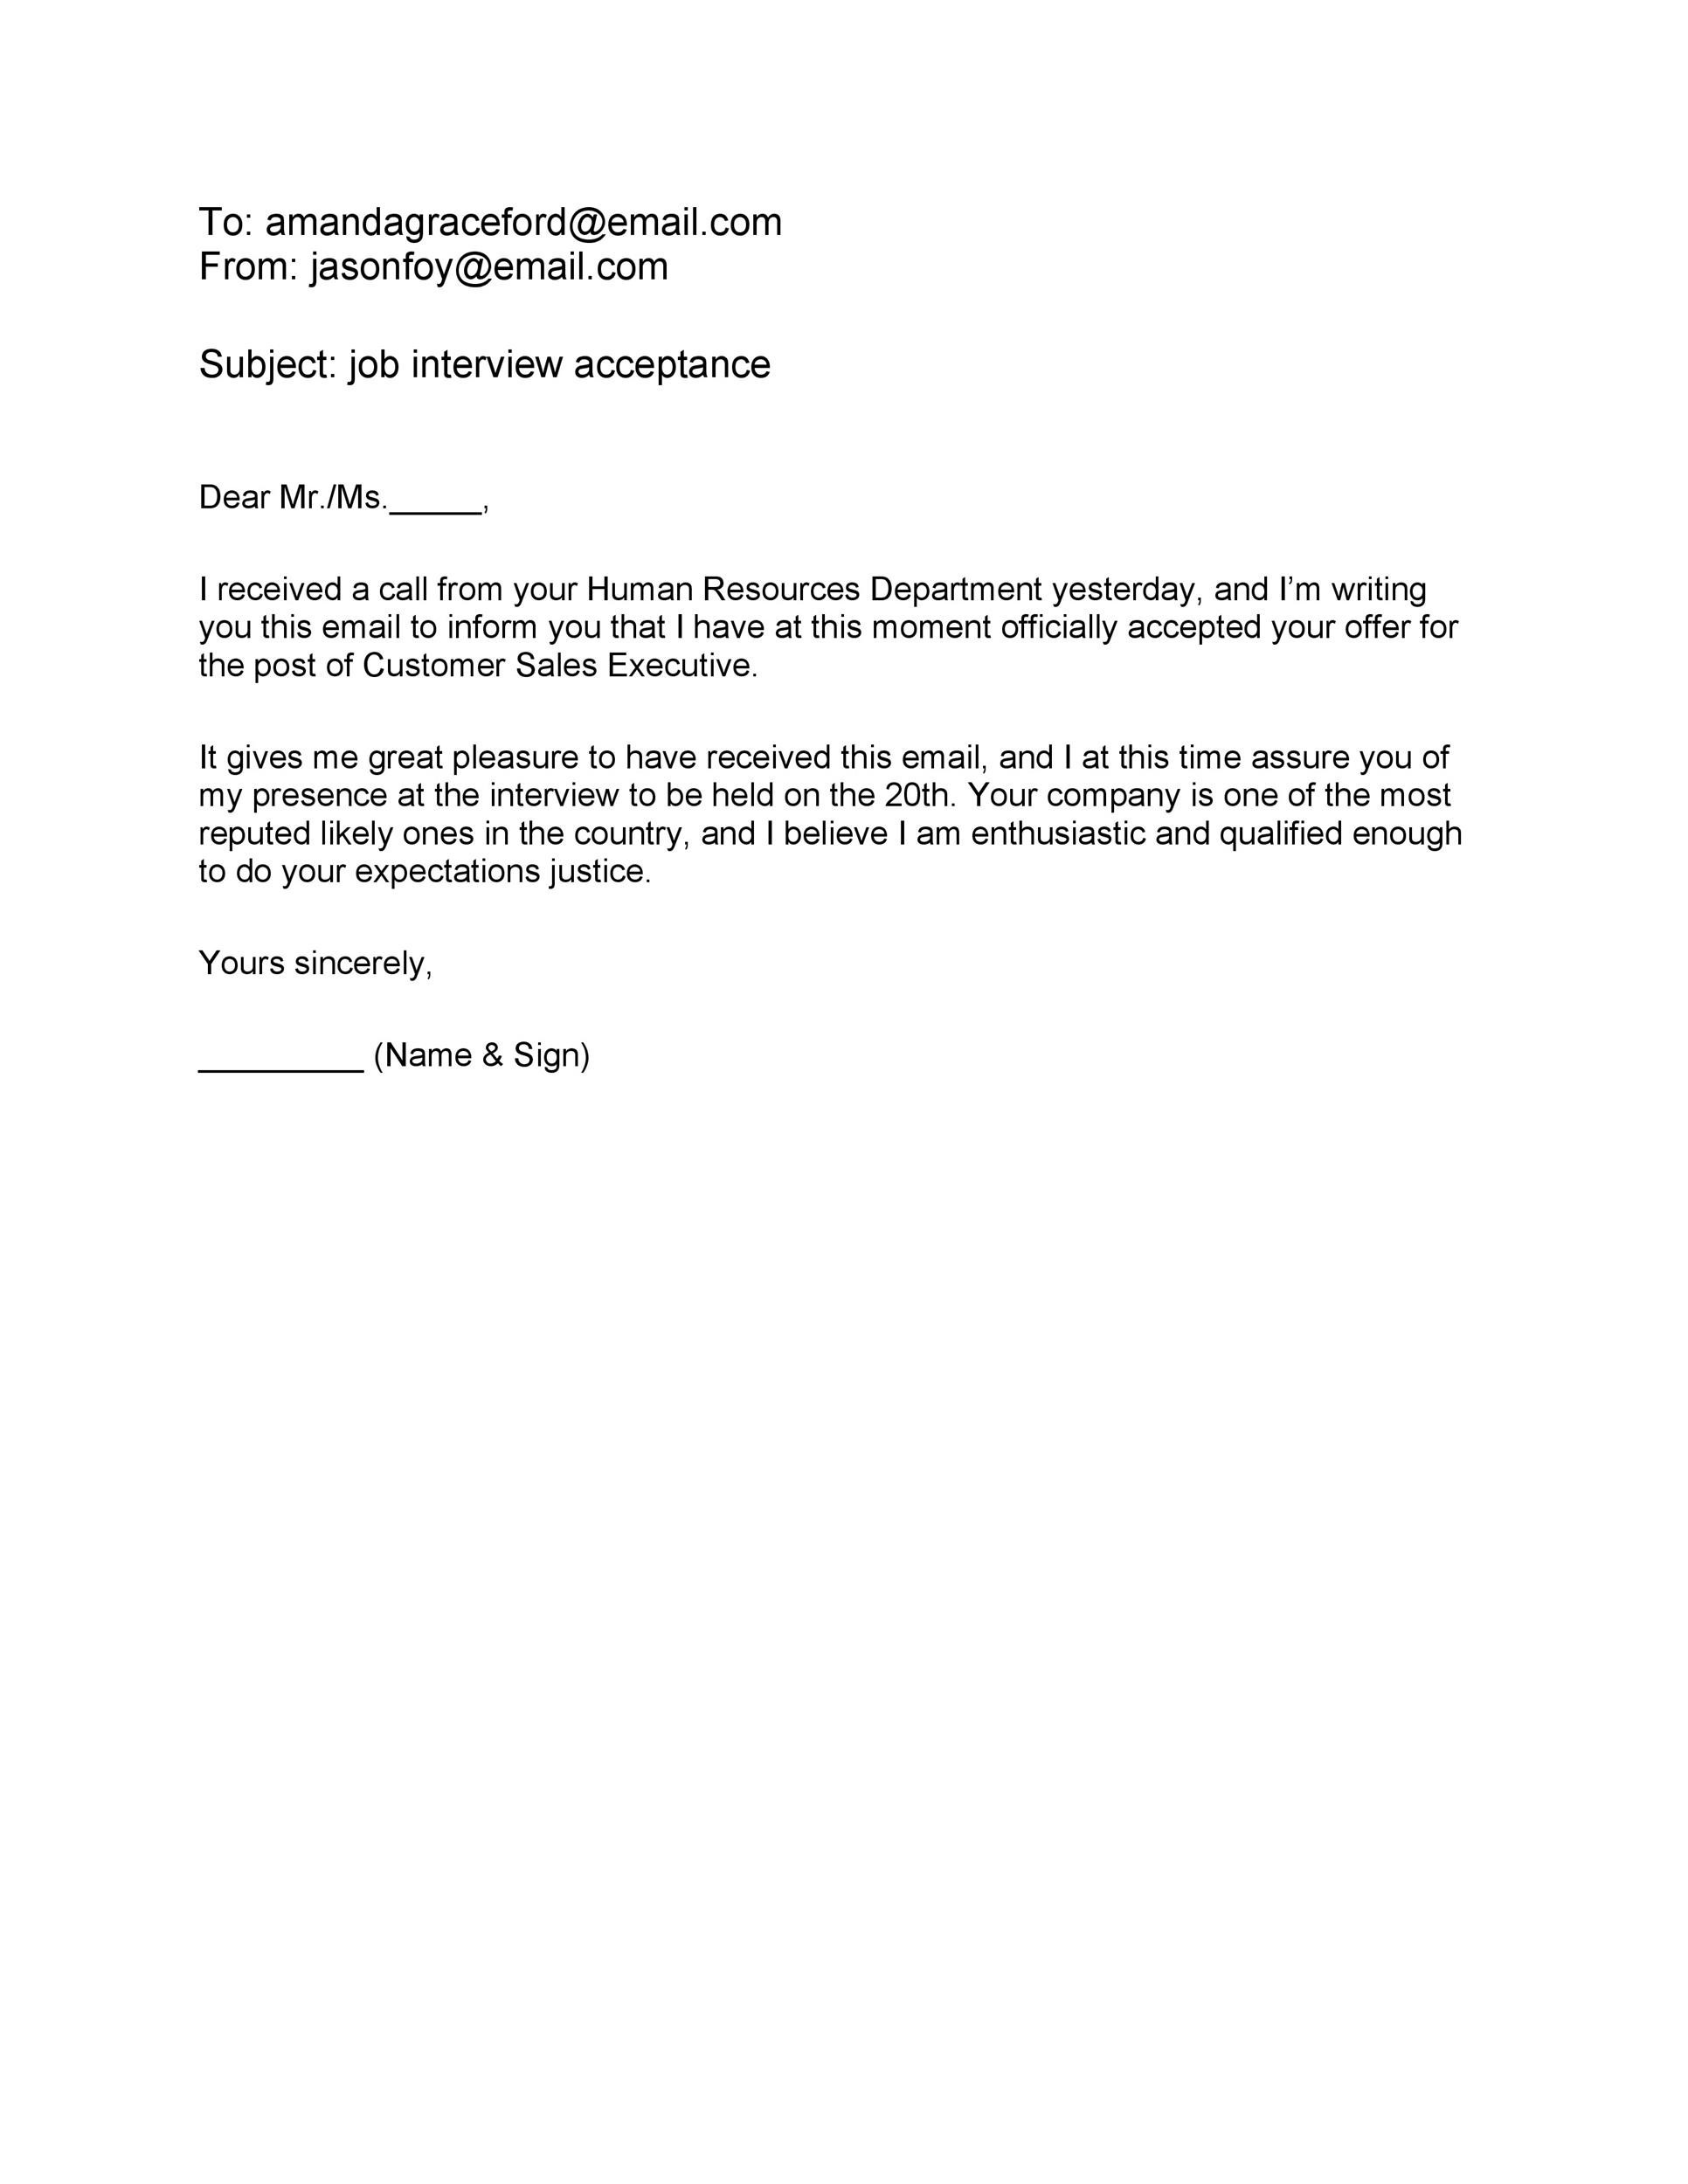 Free interview acceptance email 04